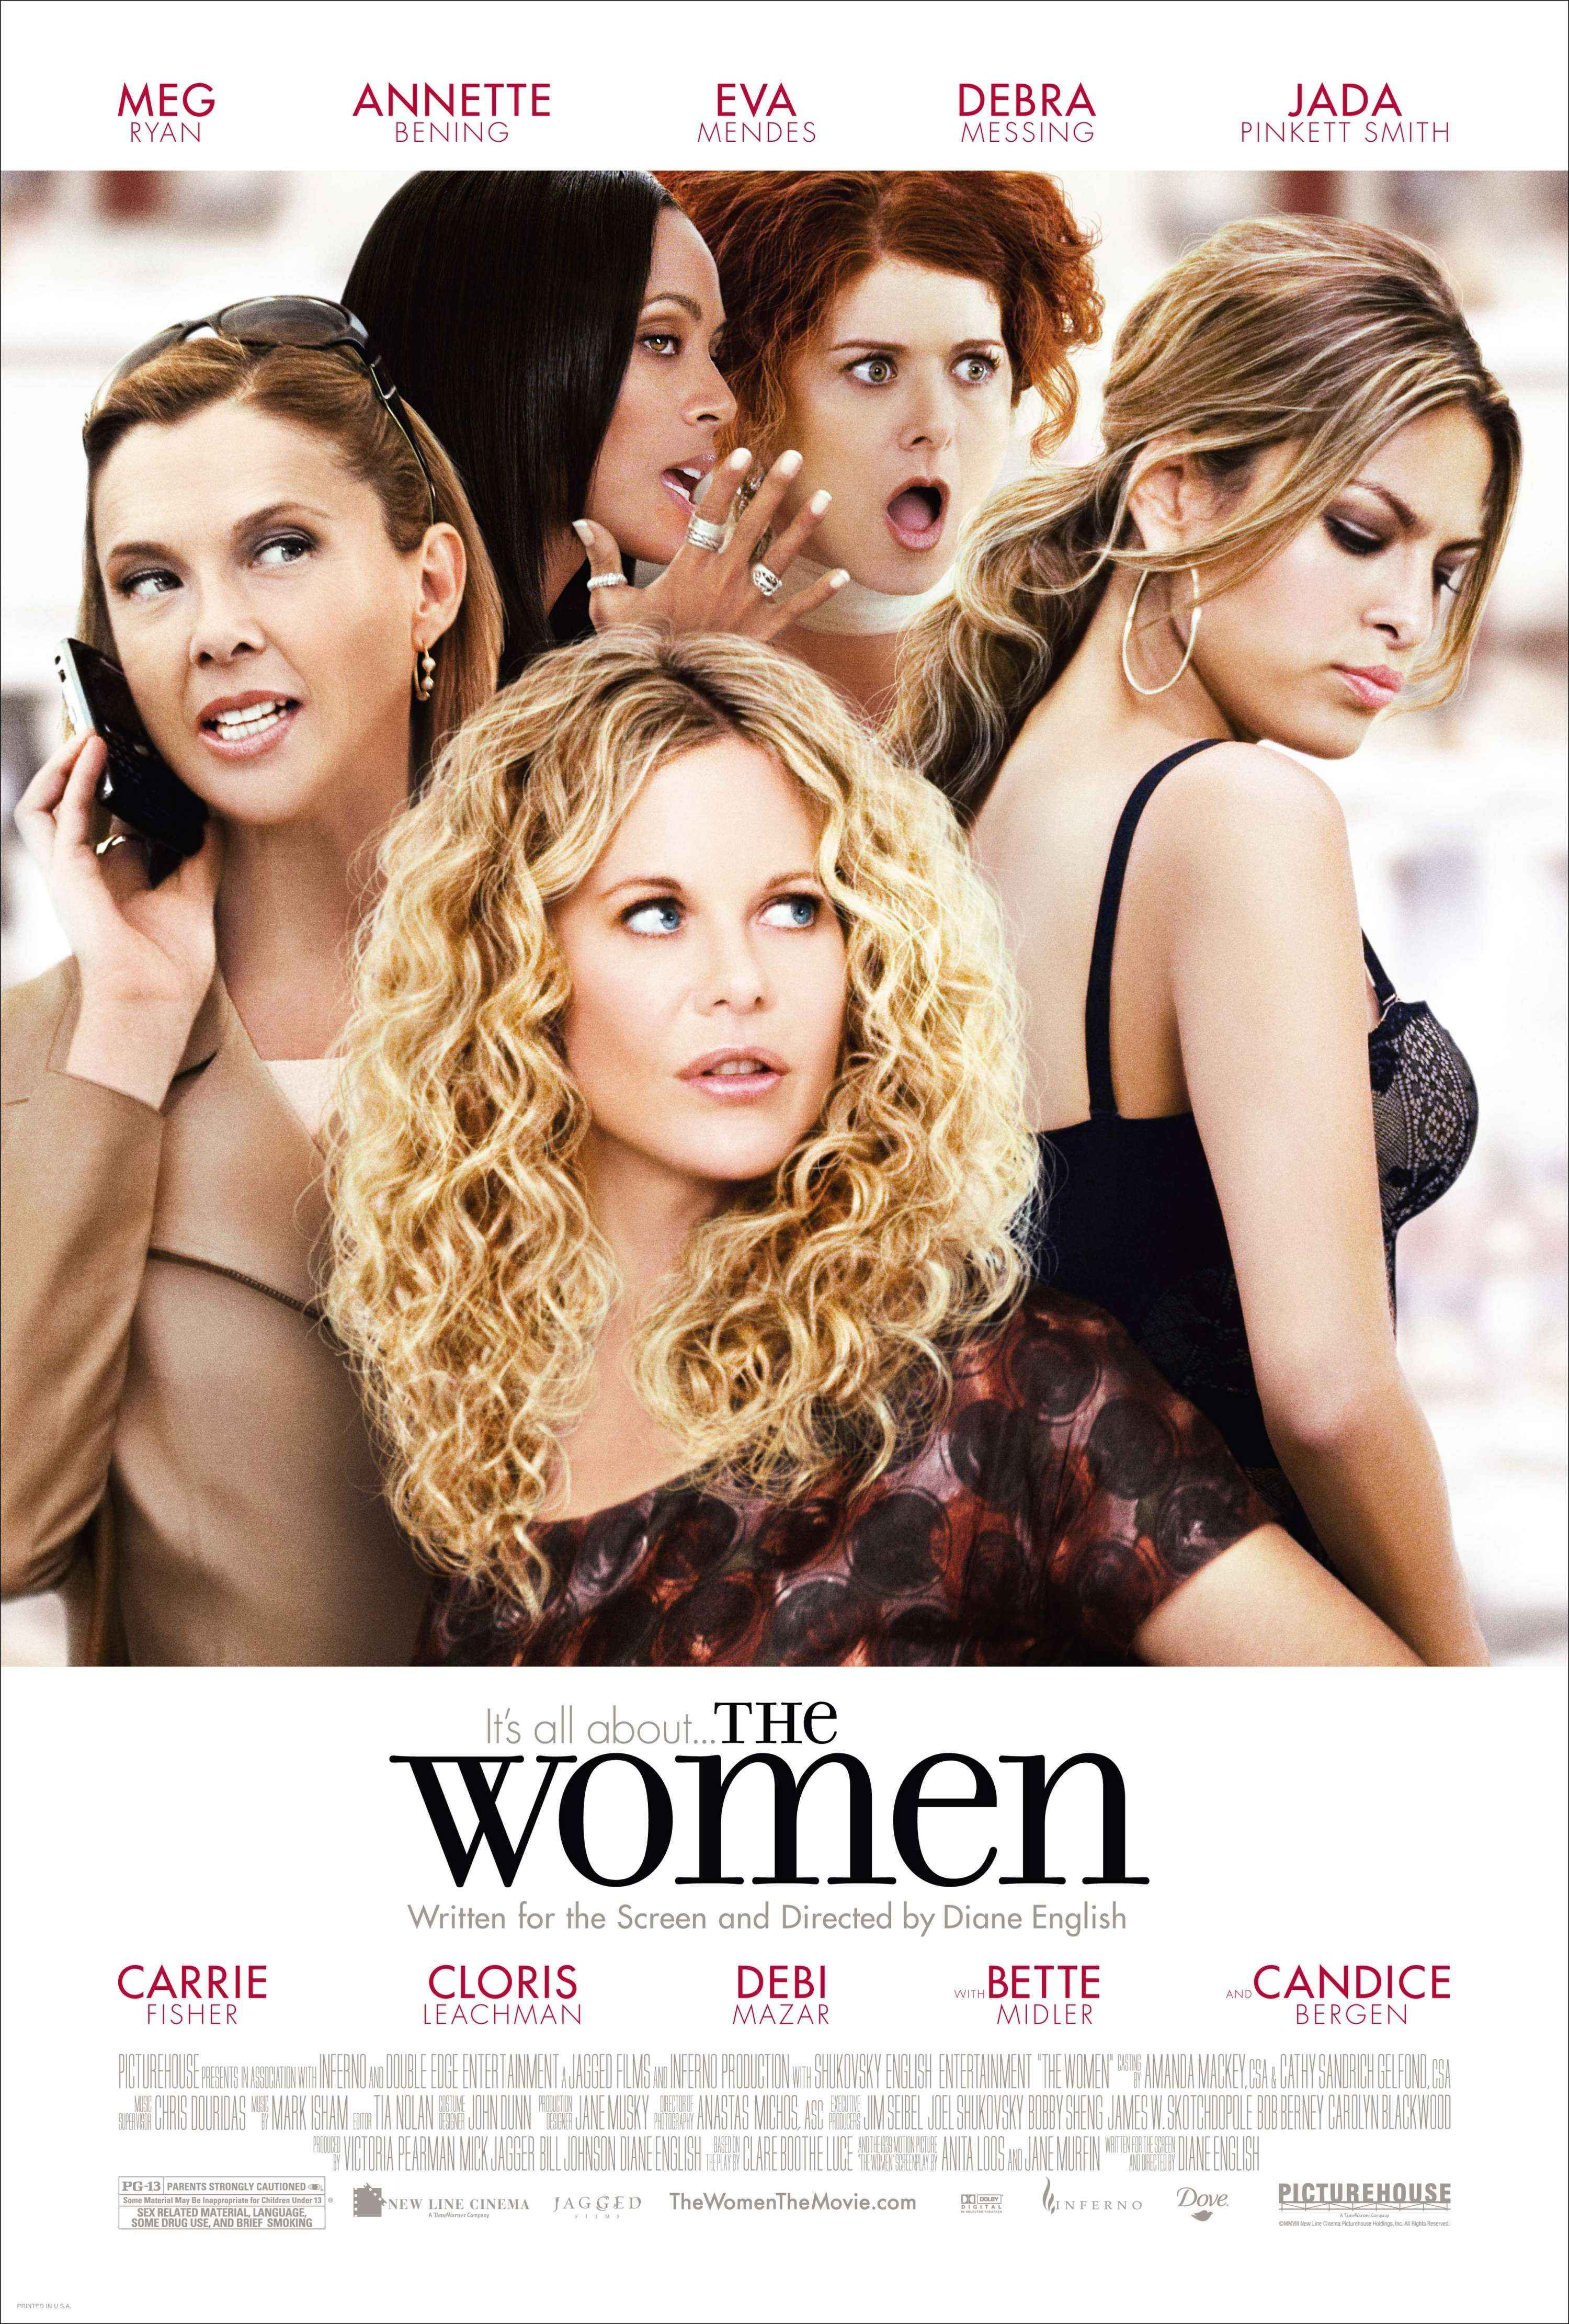 1 of the best movies ever lol love it total chick flick